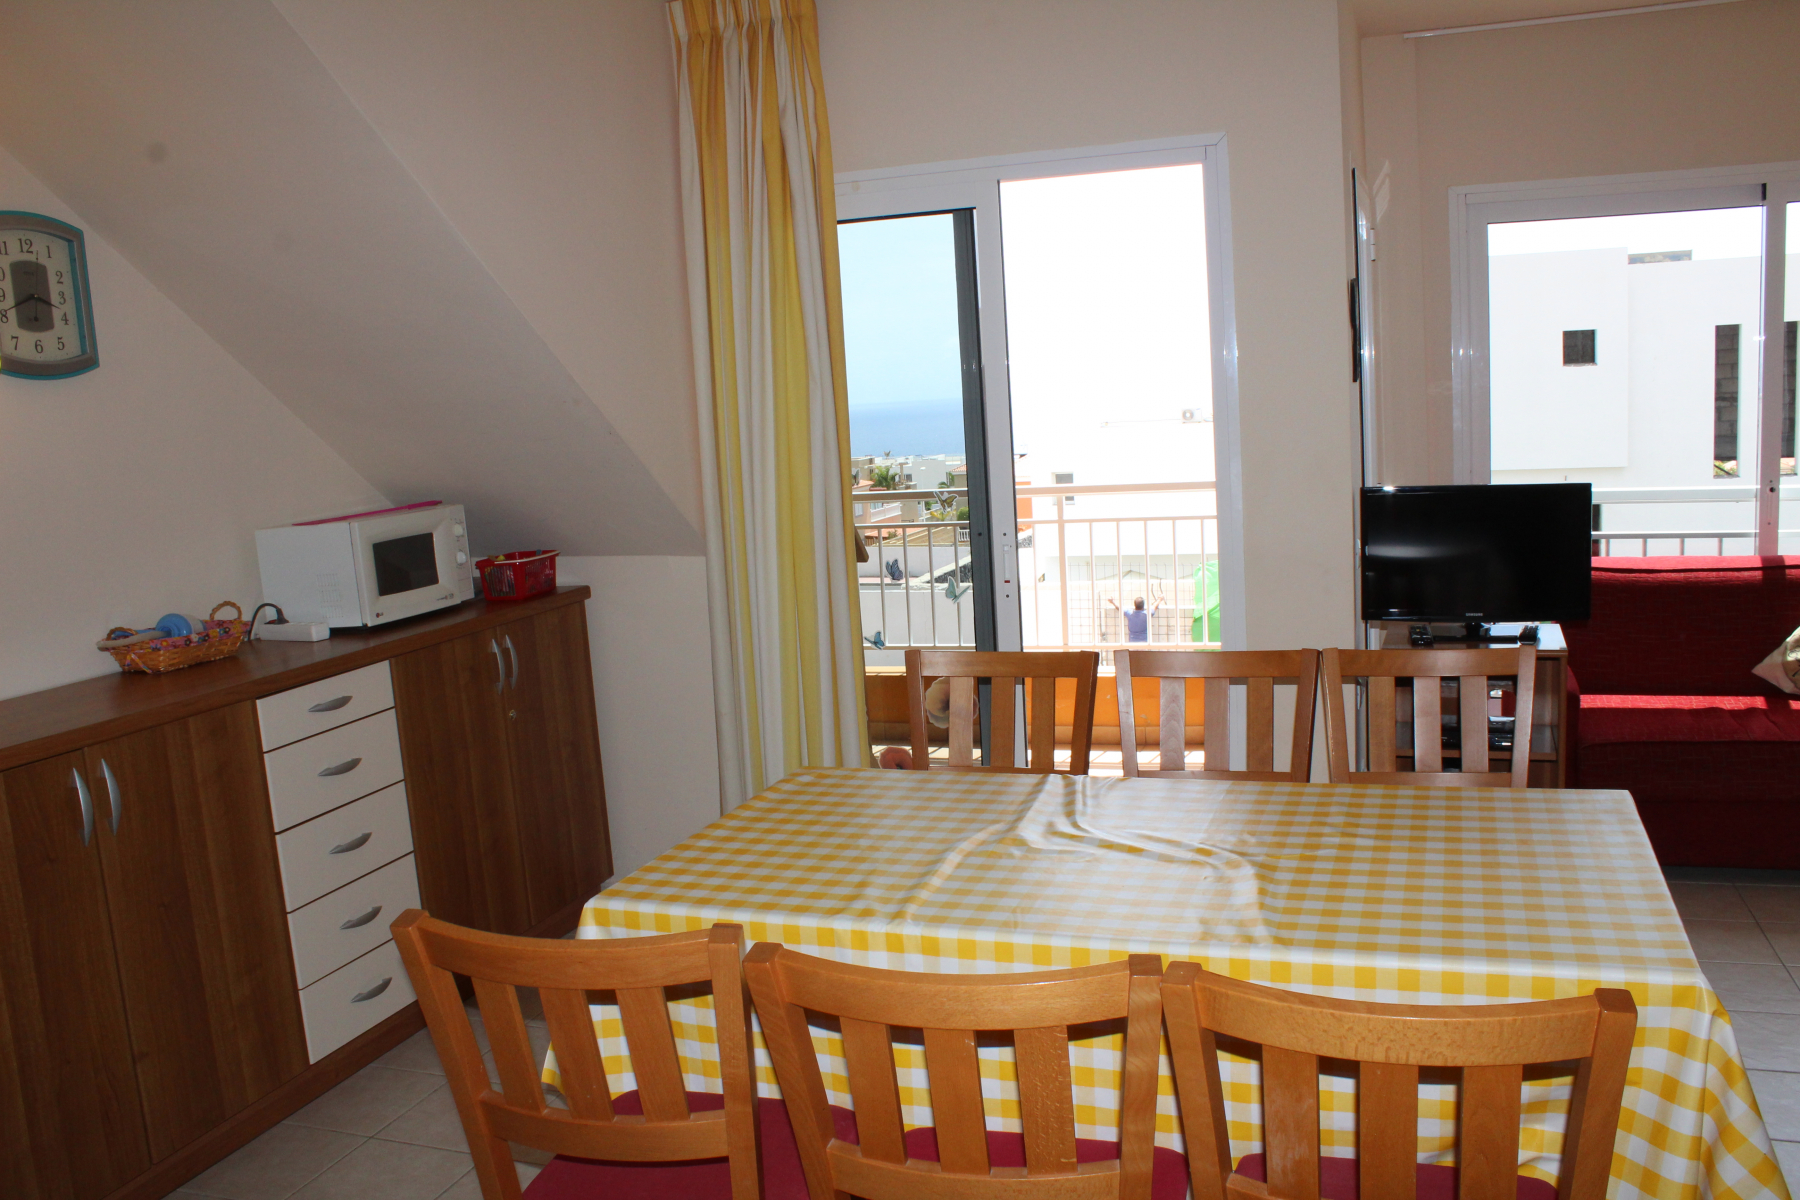 Properties for Sale in Tenerife, Canary Islands, Spain | SylkWayStar Real Estate. Apartment with 2 bedrooms in Callao Salvaje. Image-25717